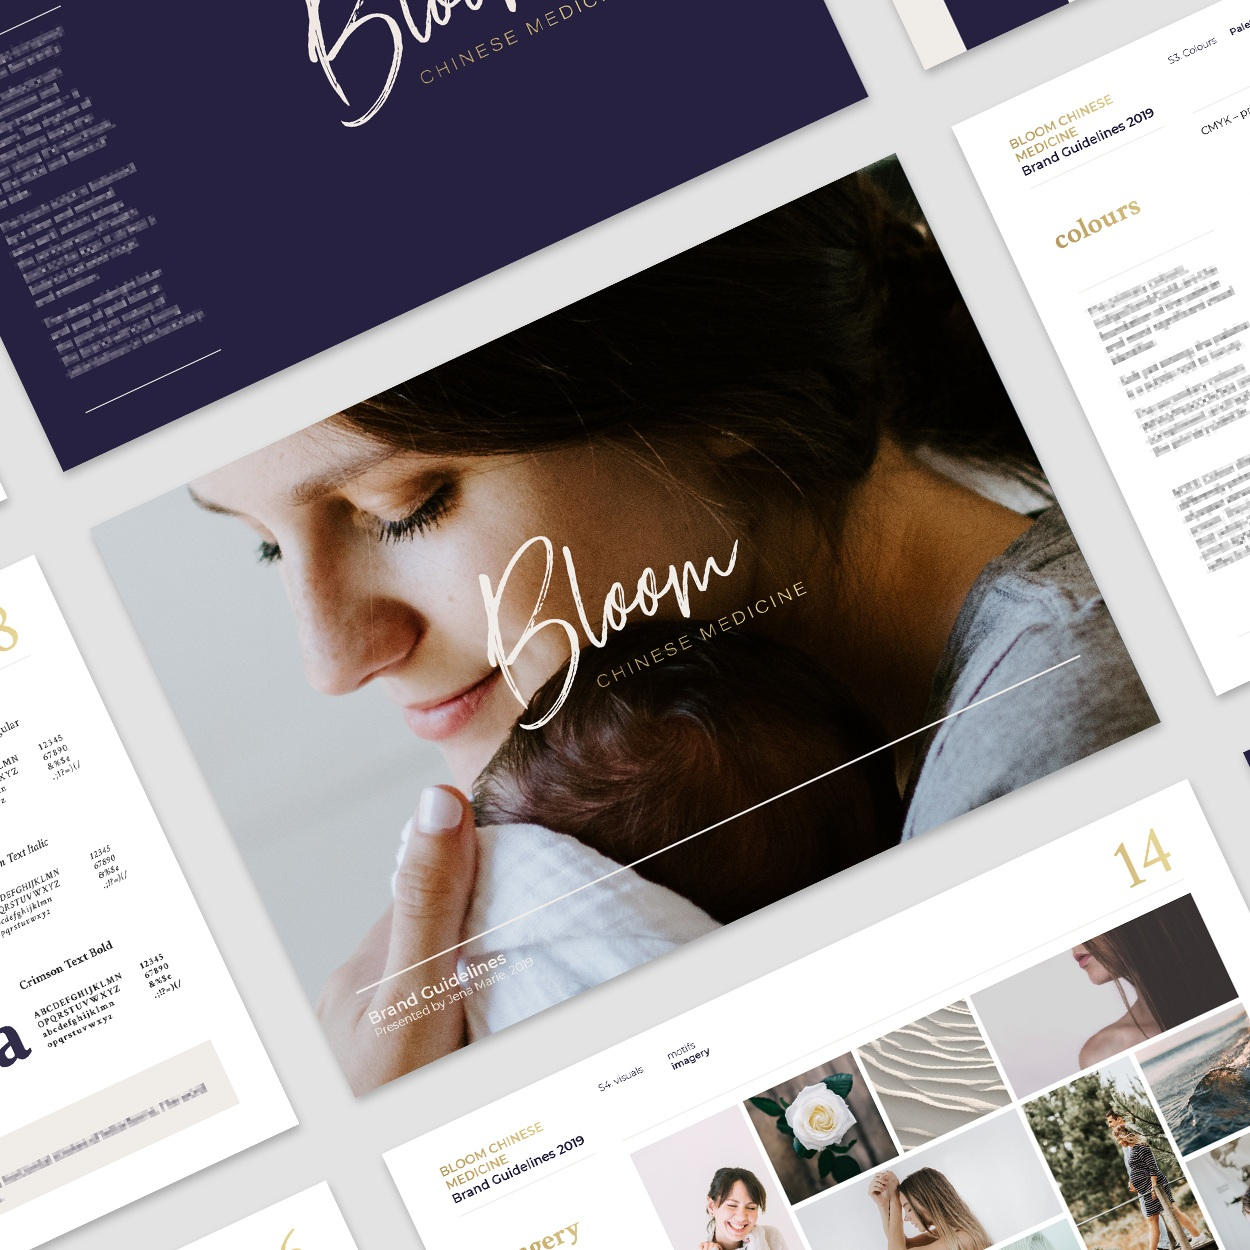 Interested to know more about the branding process? - Check out this in-depth case study which details my branding process for Bloom Chinese Medicine.